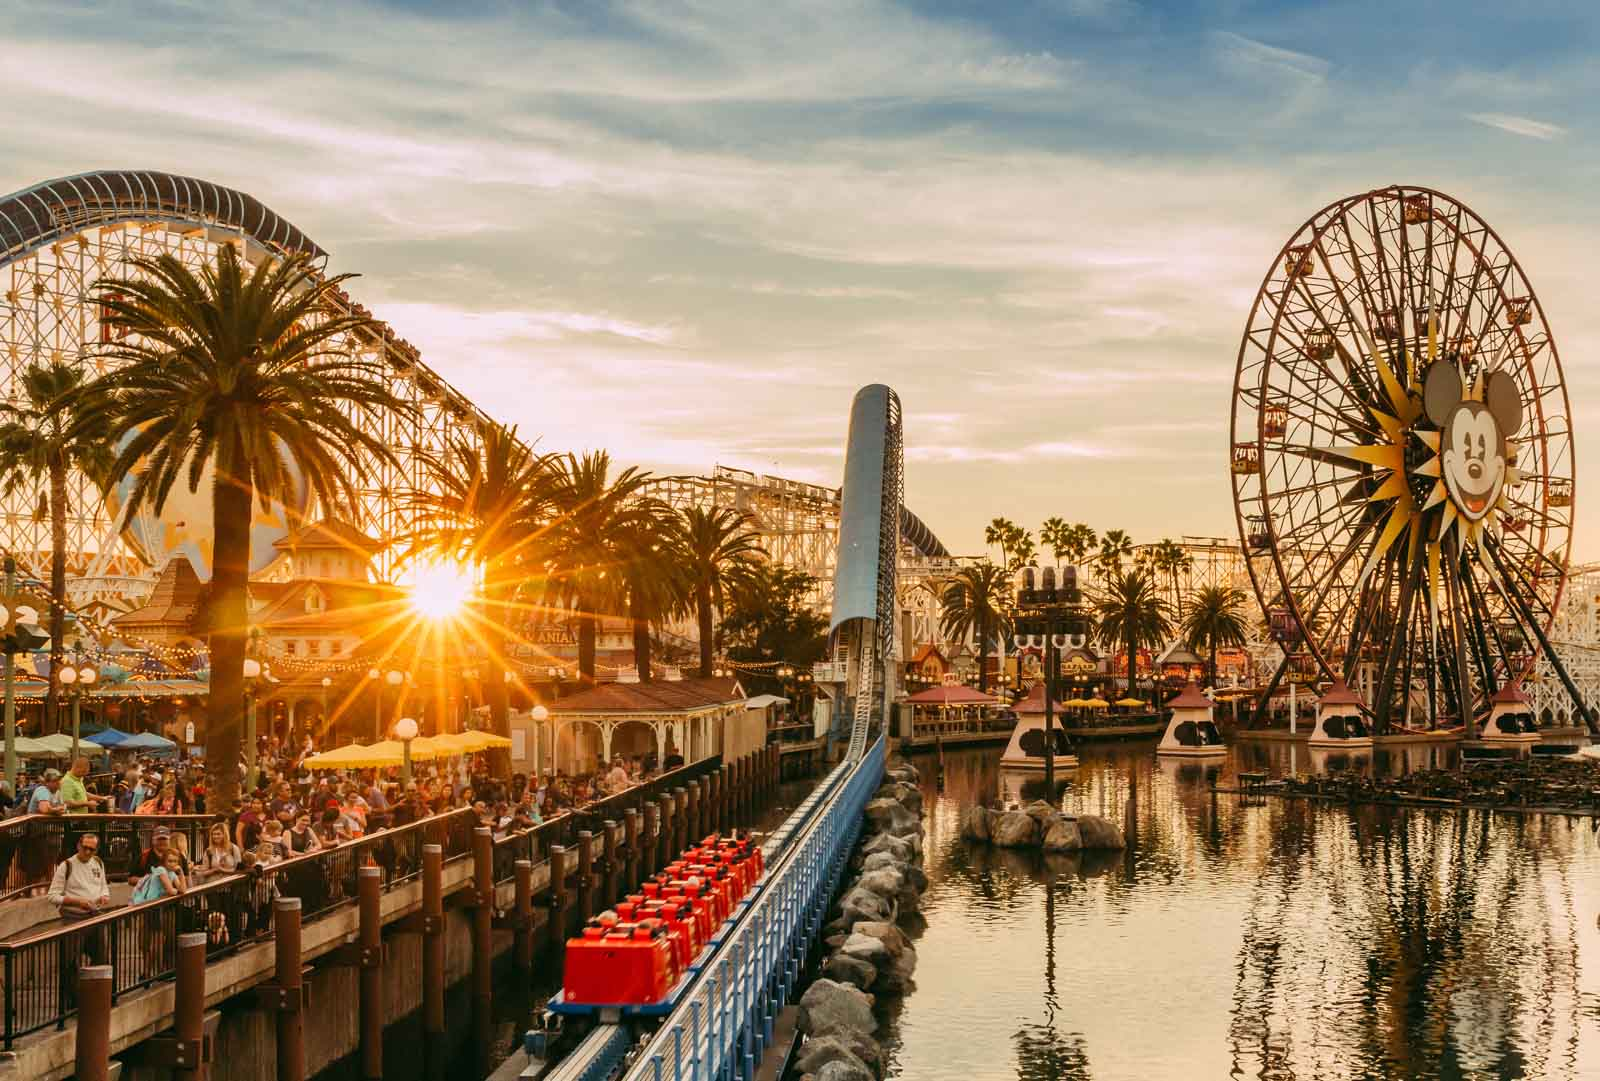 Disney photo of park at sunset, Disney photo tips on capturing environment with wide angle